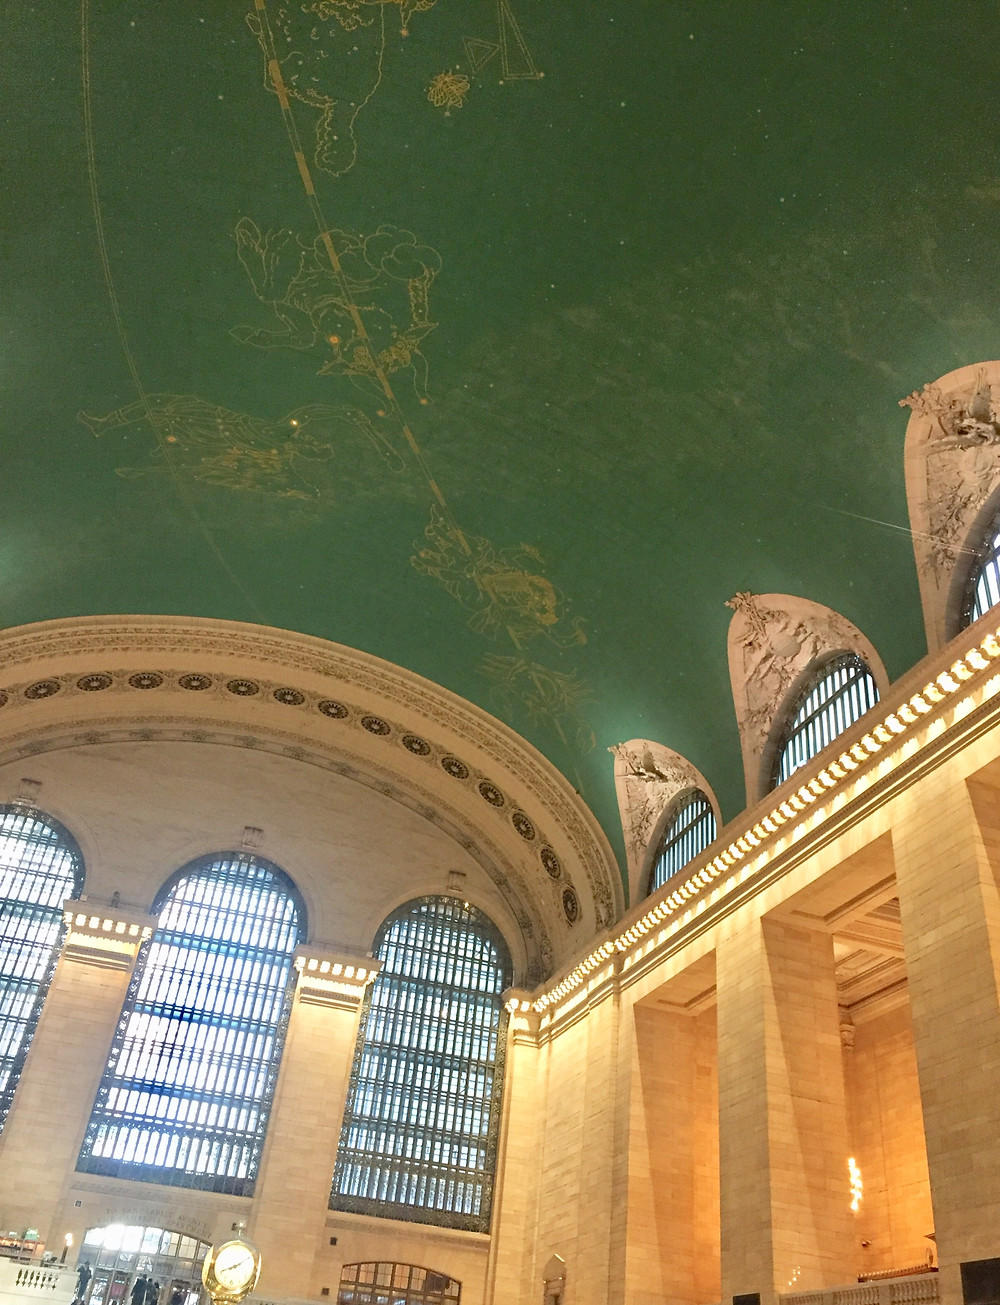 The ceiling of Grand Central Station displays the astrology signs defined in gold.